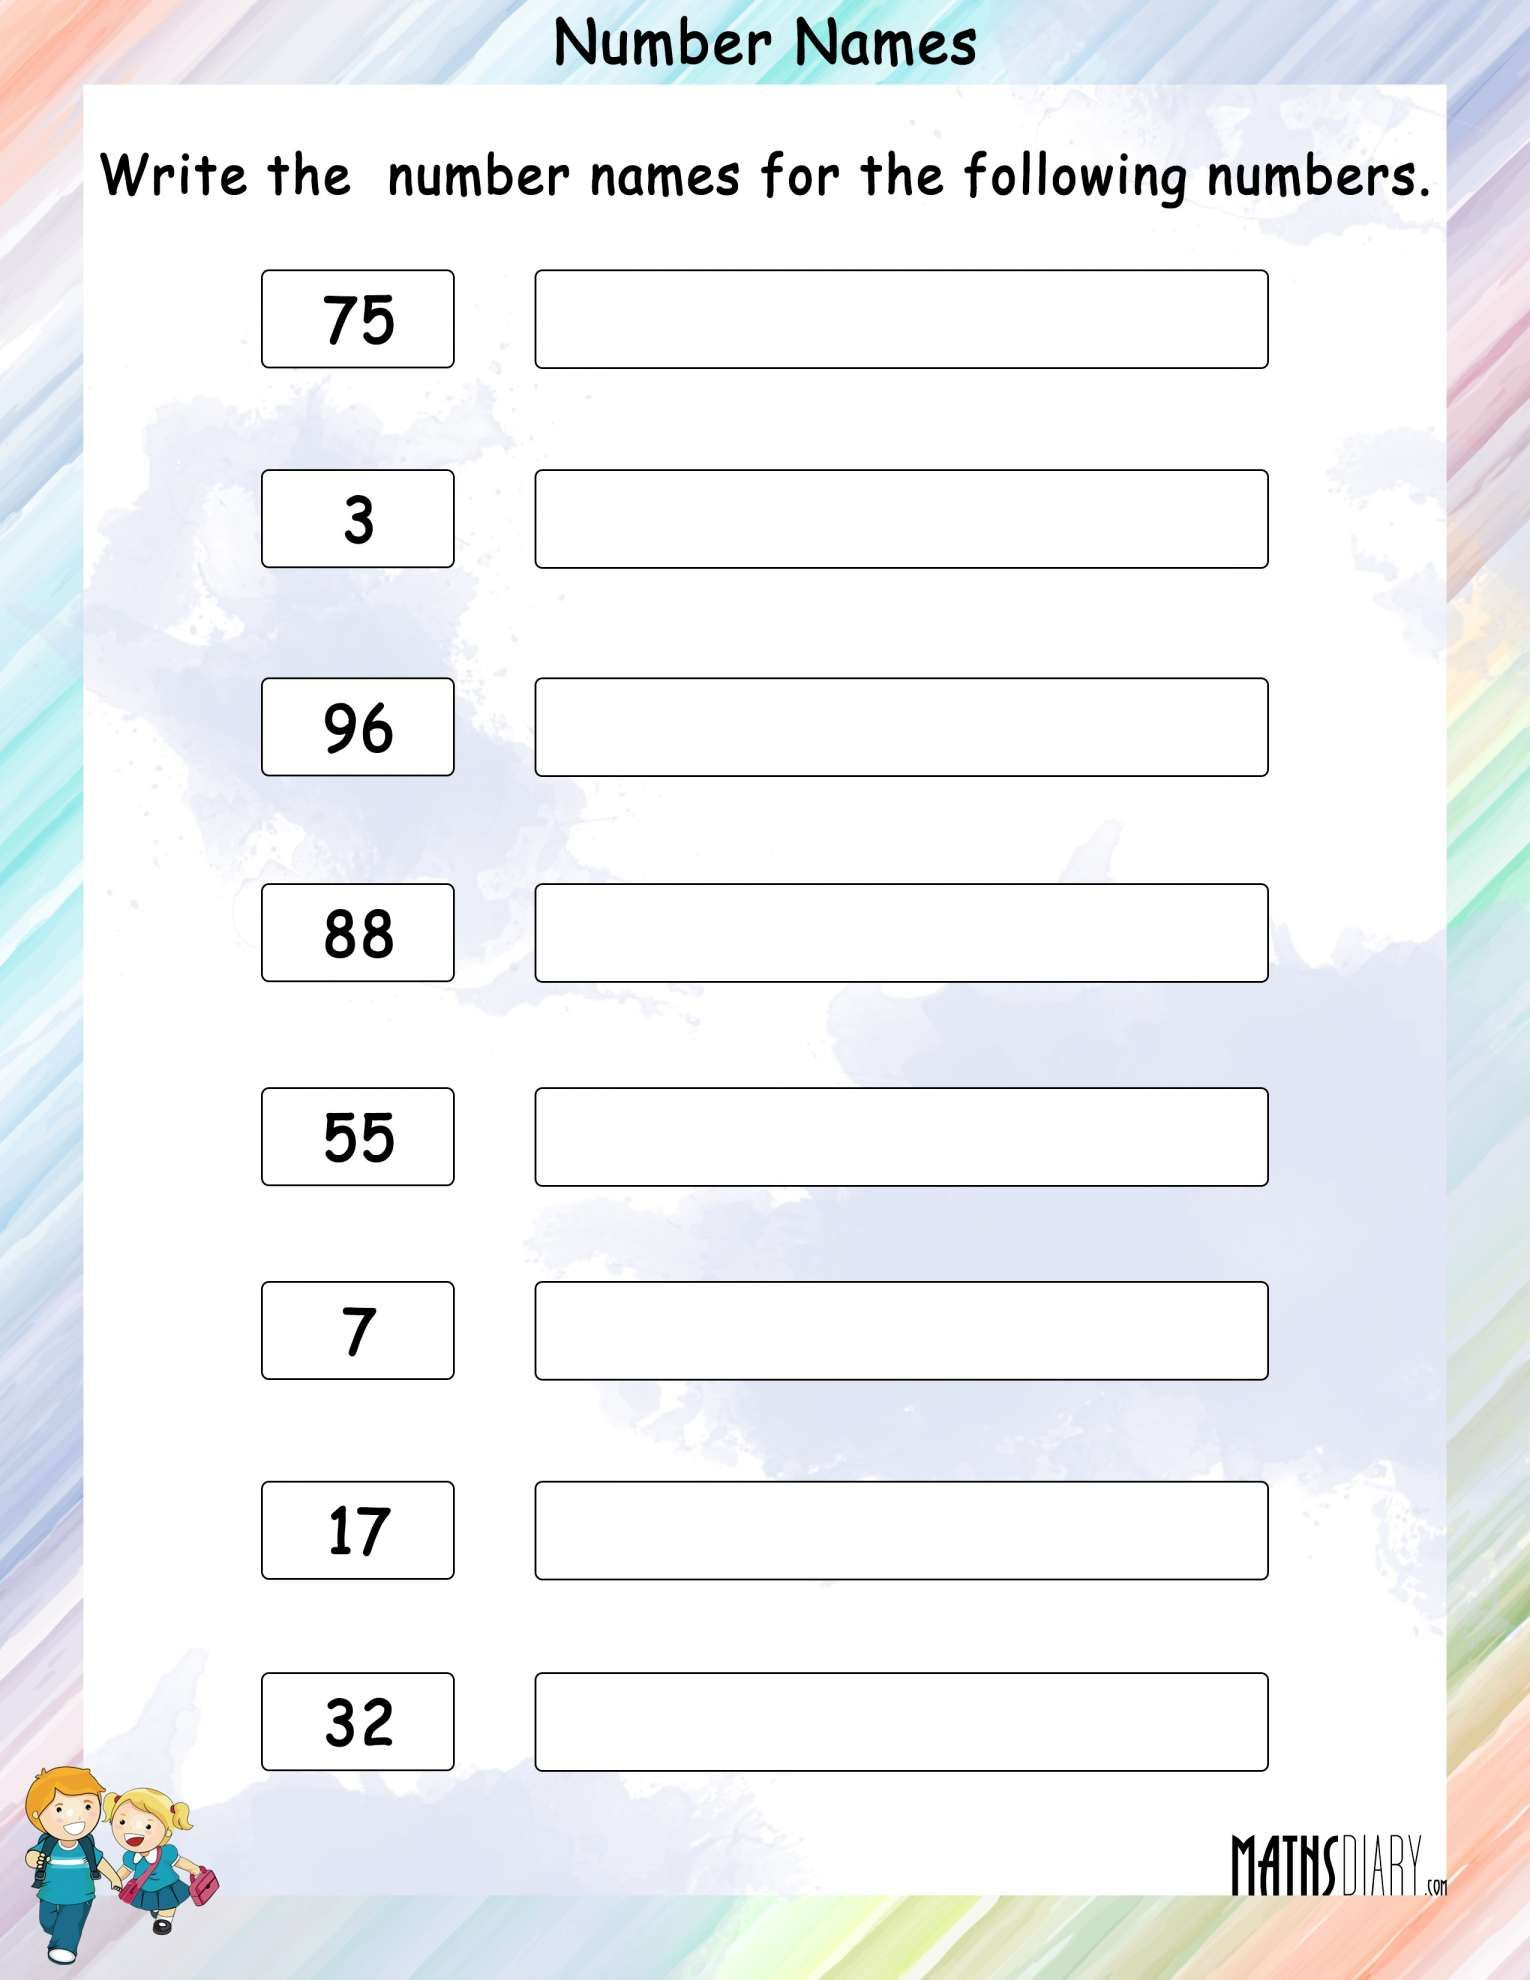 12 Kindergarten Number Names Worksheet